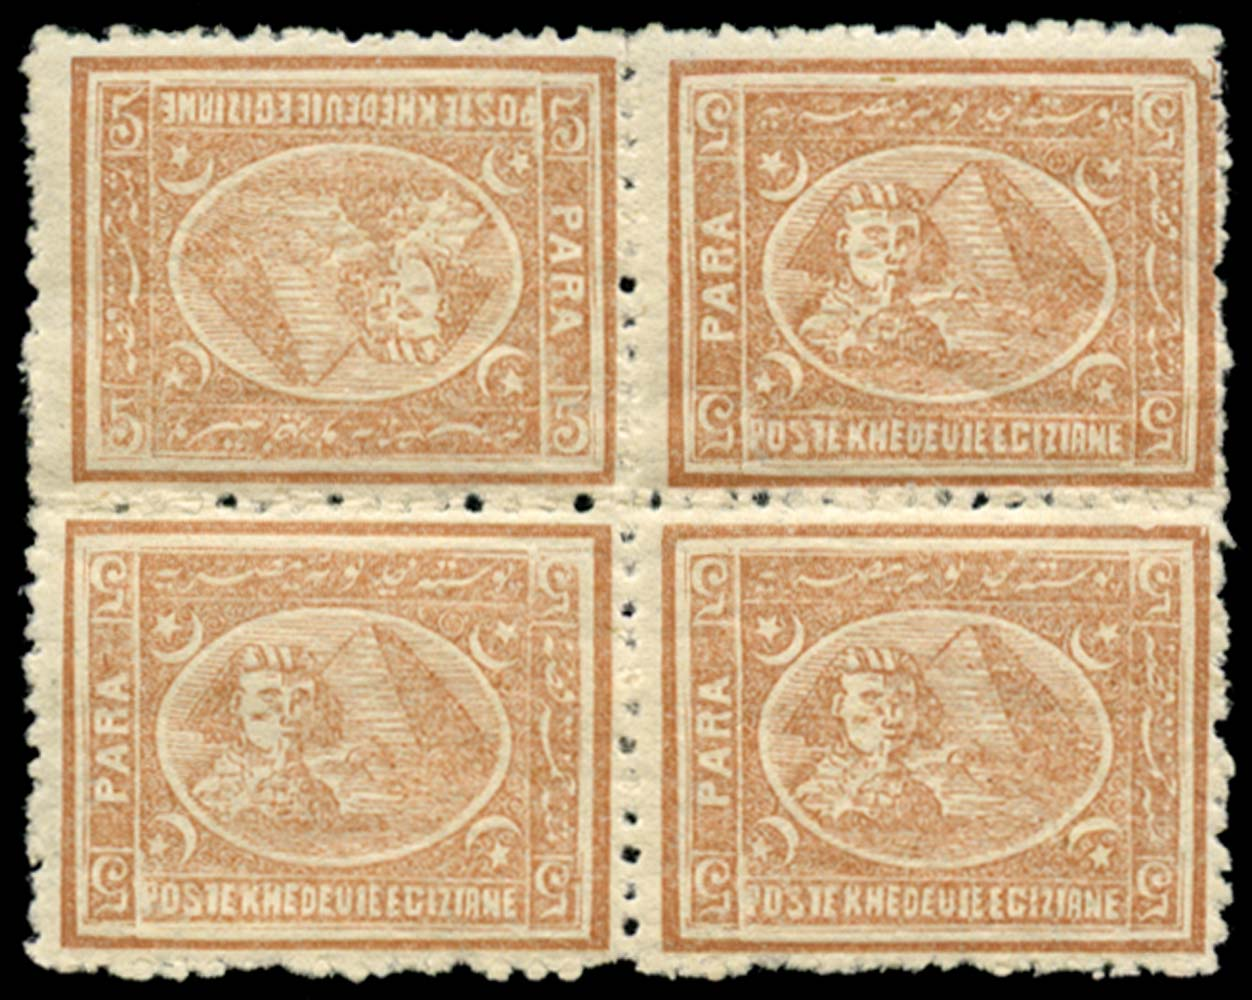 EGYPT 1874  SG35fb Mint 5pa brown tete-beche horizontal pair